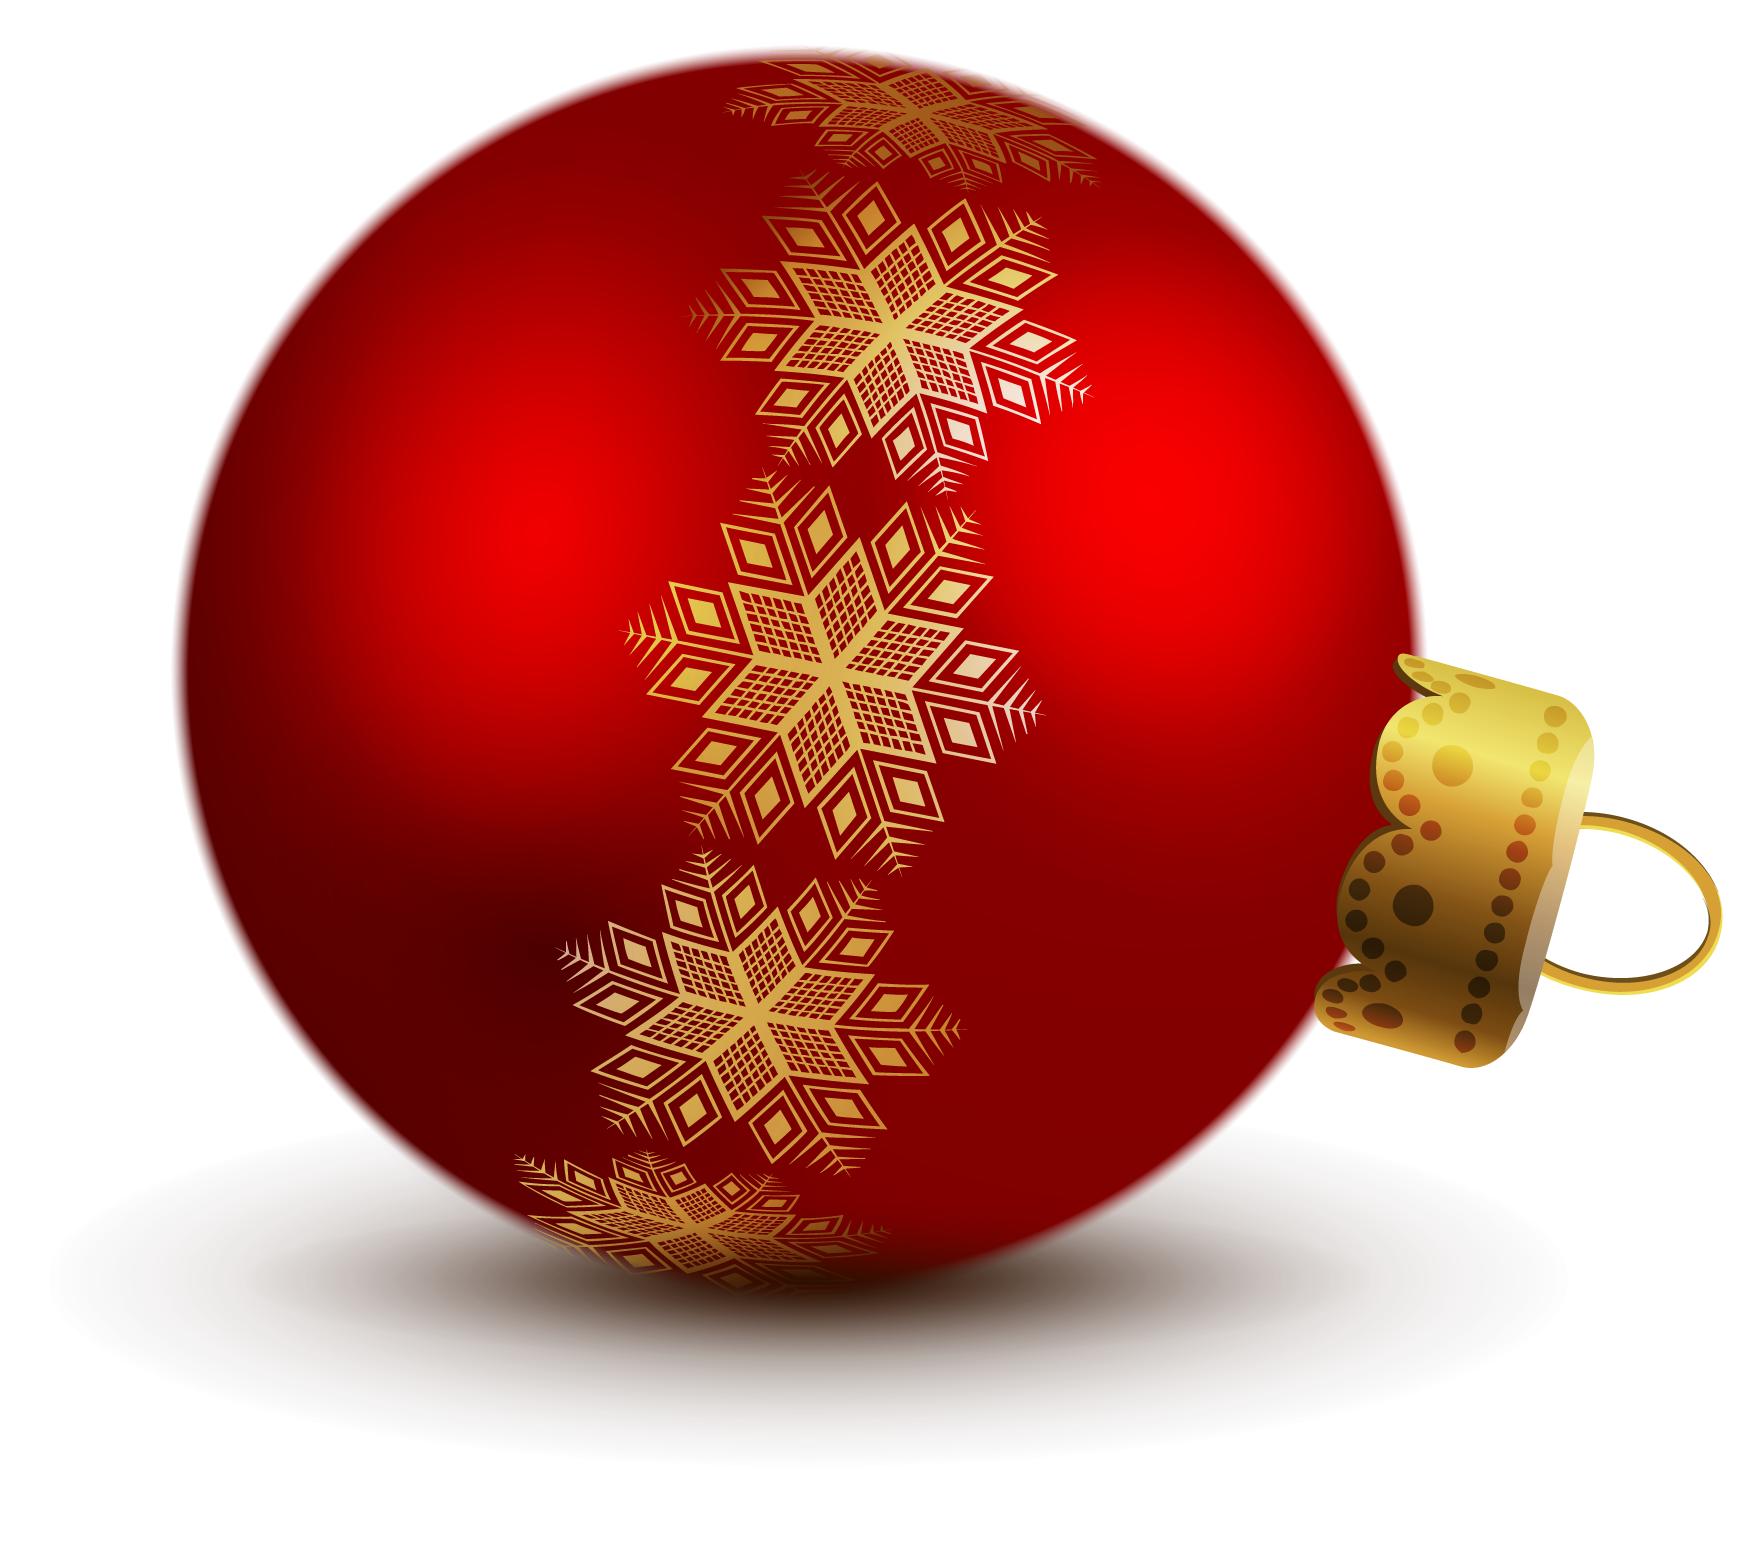 Christmas Ornaments Designs Png image #46355